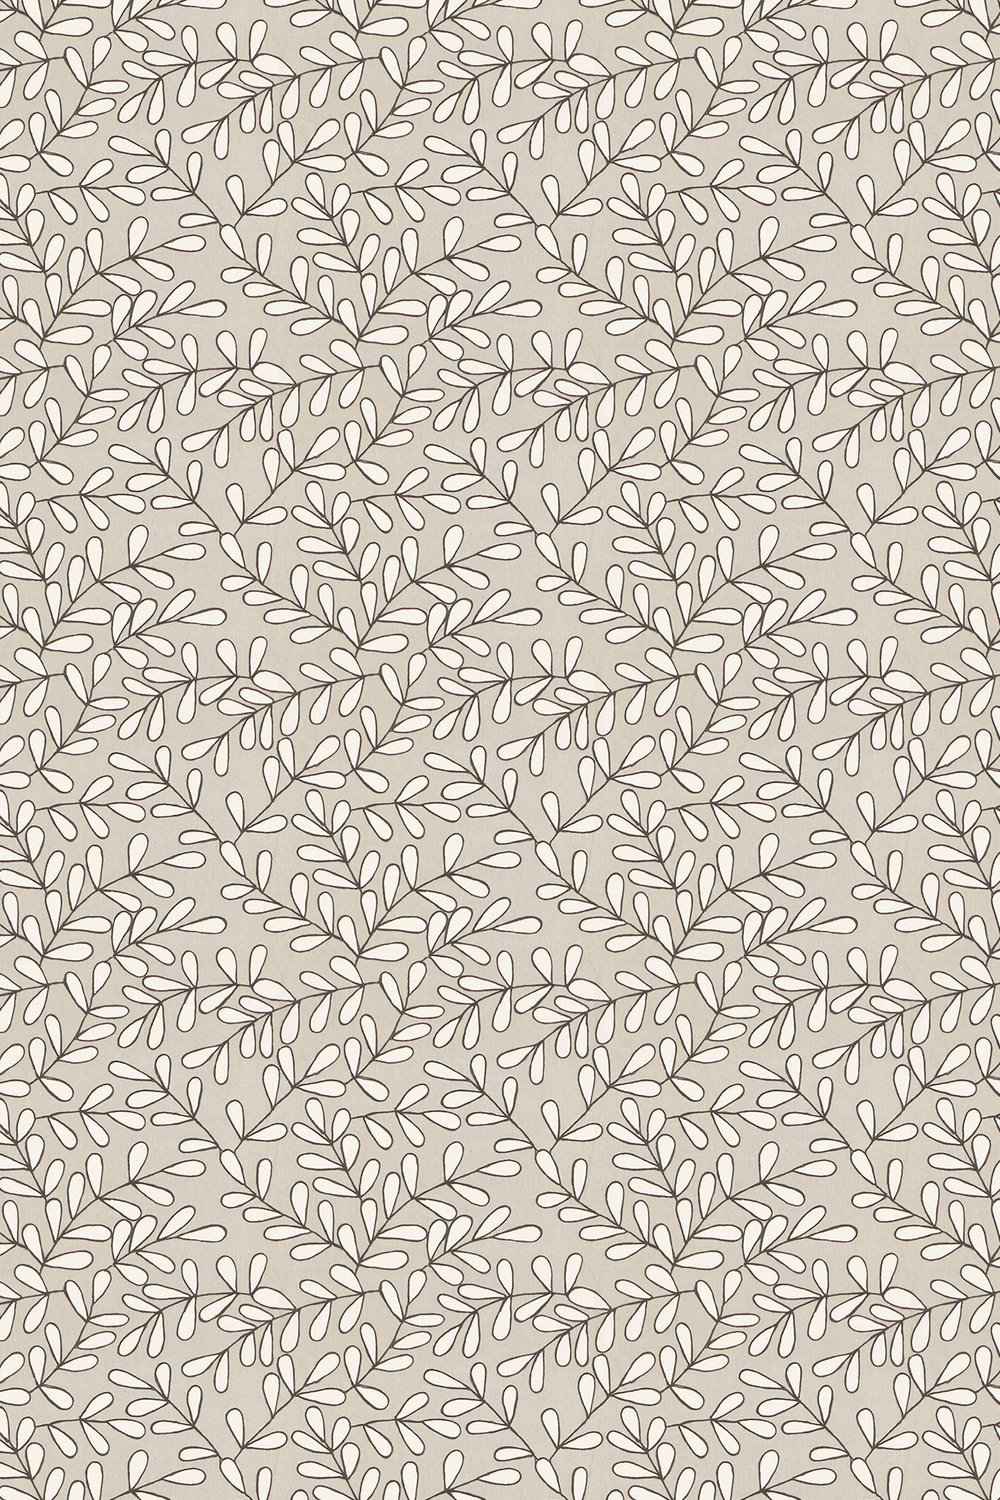 Oulu Weave Fabric - Mink, Pewter and Pumice - by Scion